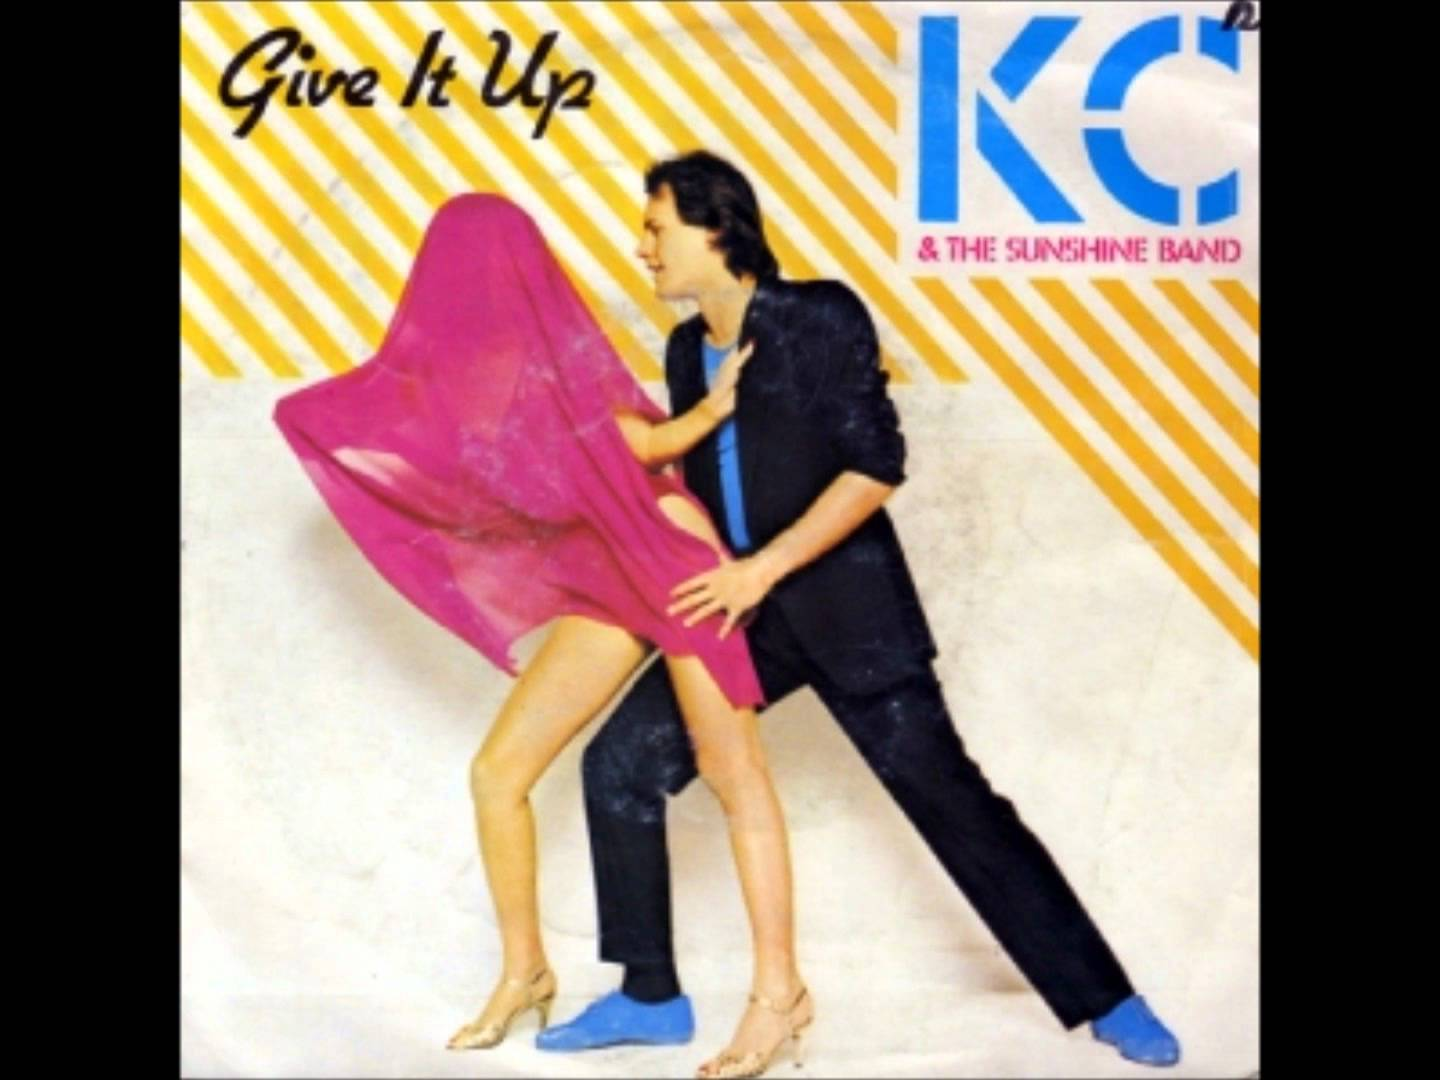 KC & The Sunshine Band - Baby Give It Up [ТБ плеер]